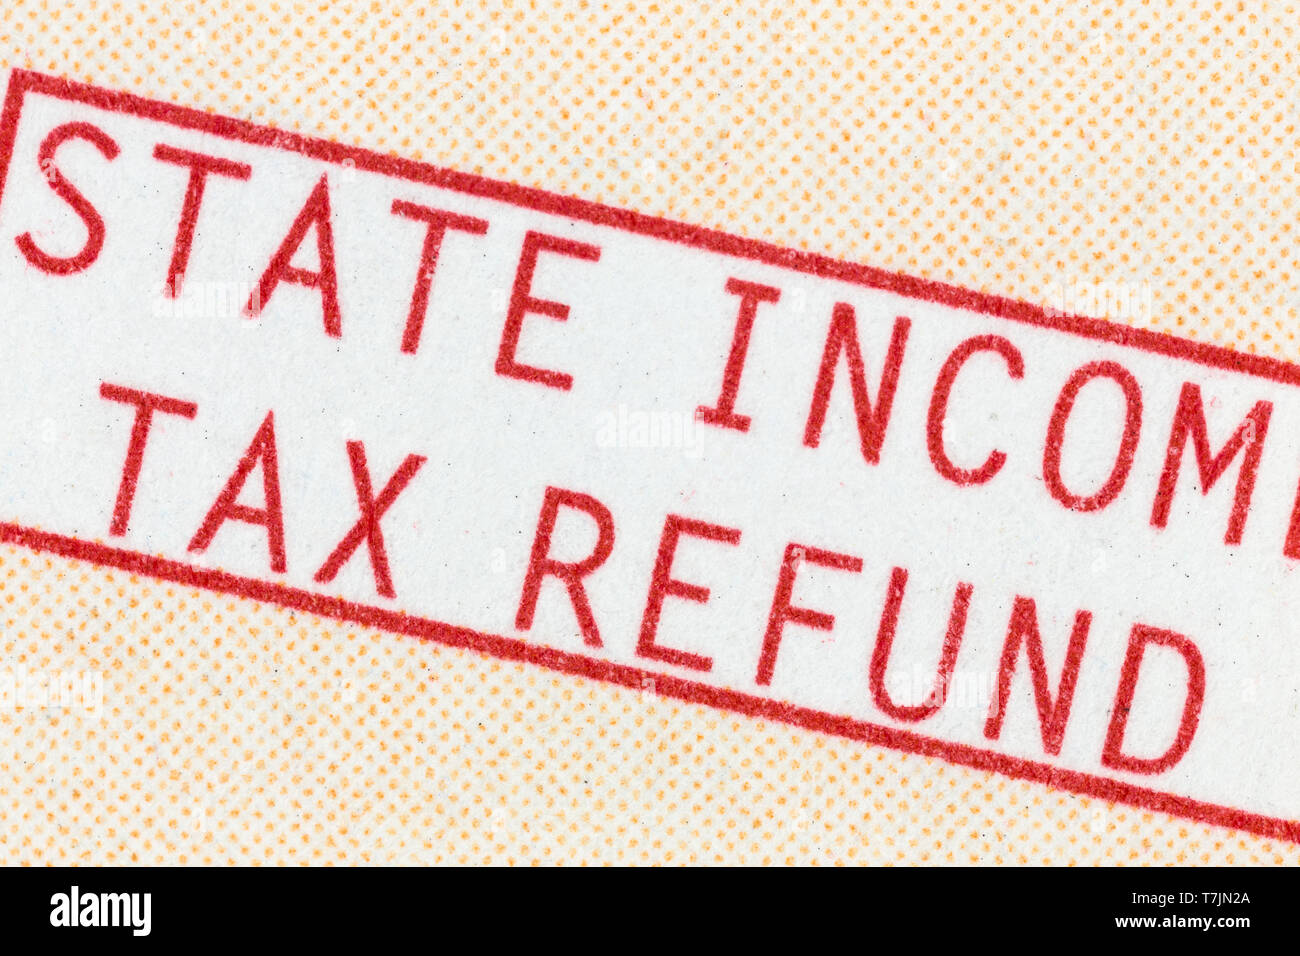 Macro detail of state income tax refund check paper statement text. - Stock Image